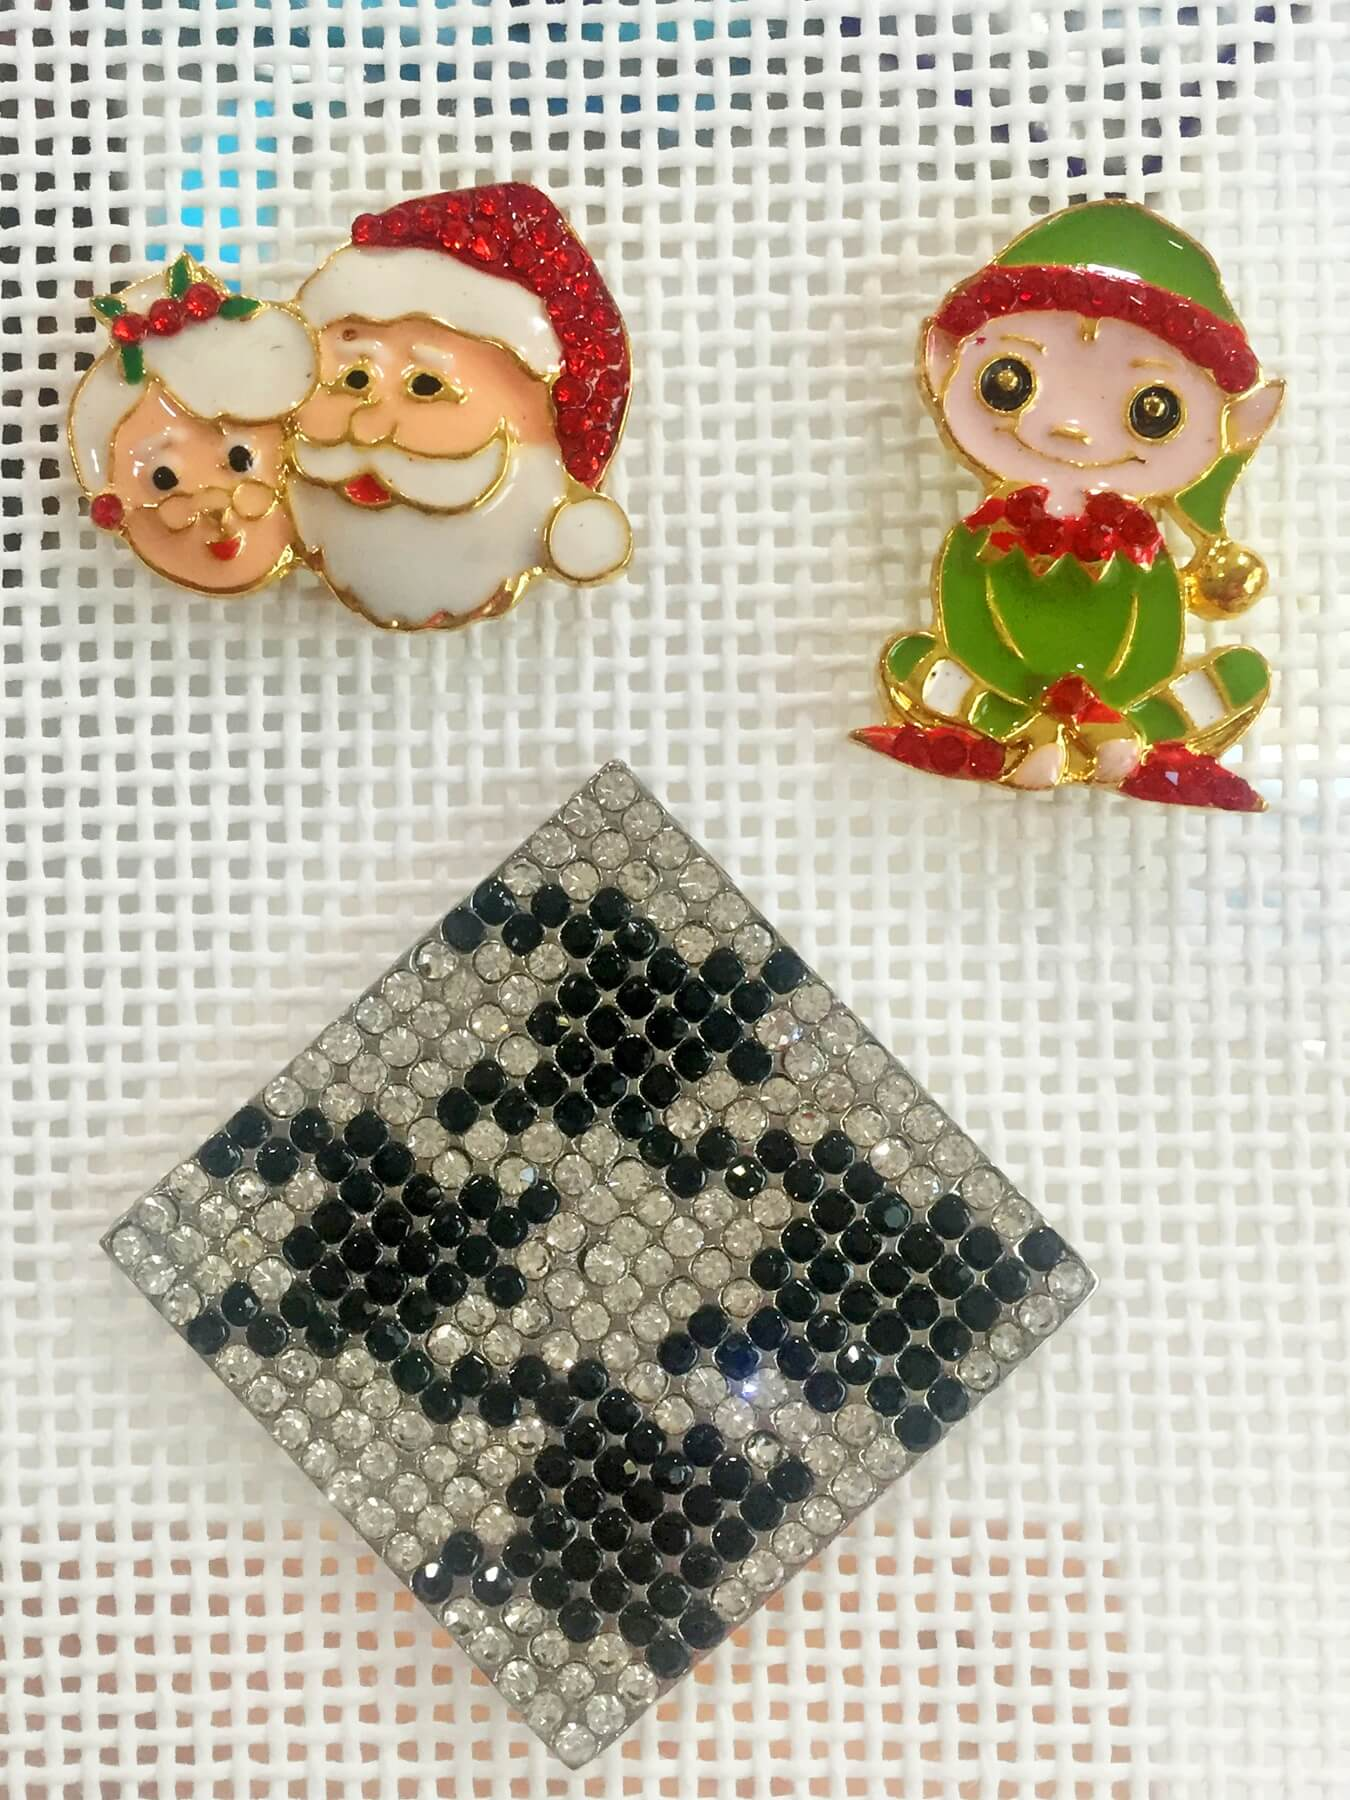 Santa and Mrs. Claus magnet, $16; Santa's elf magnet, $16; and houndstooth square magnet, $23, at Needleworks LLC